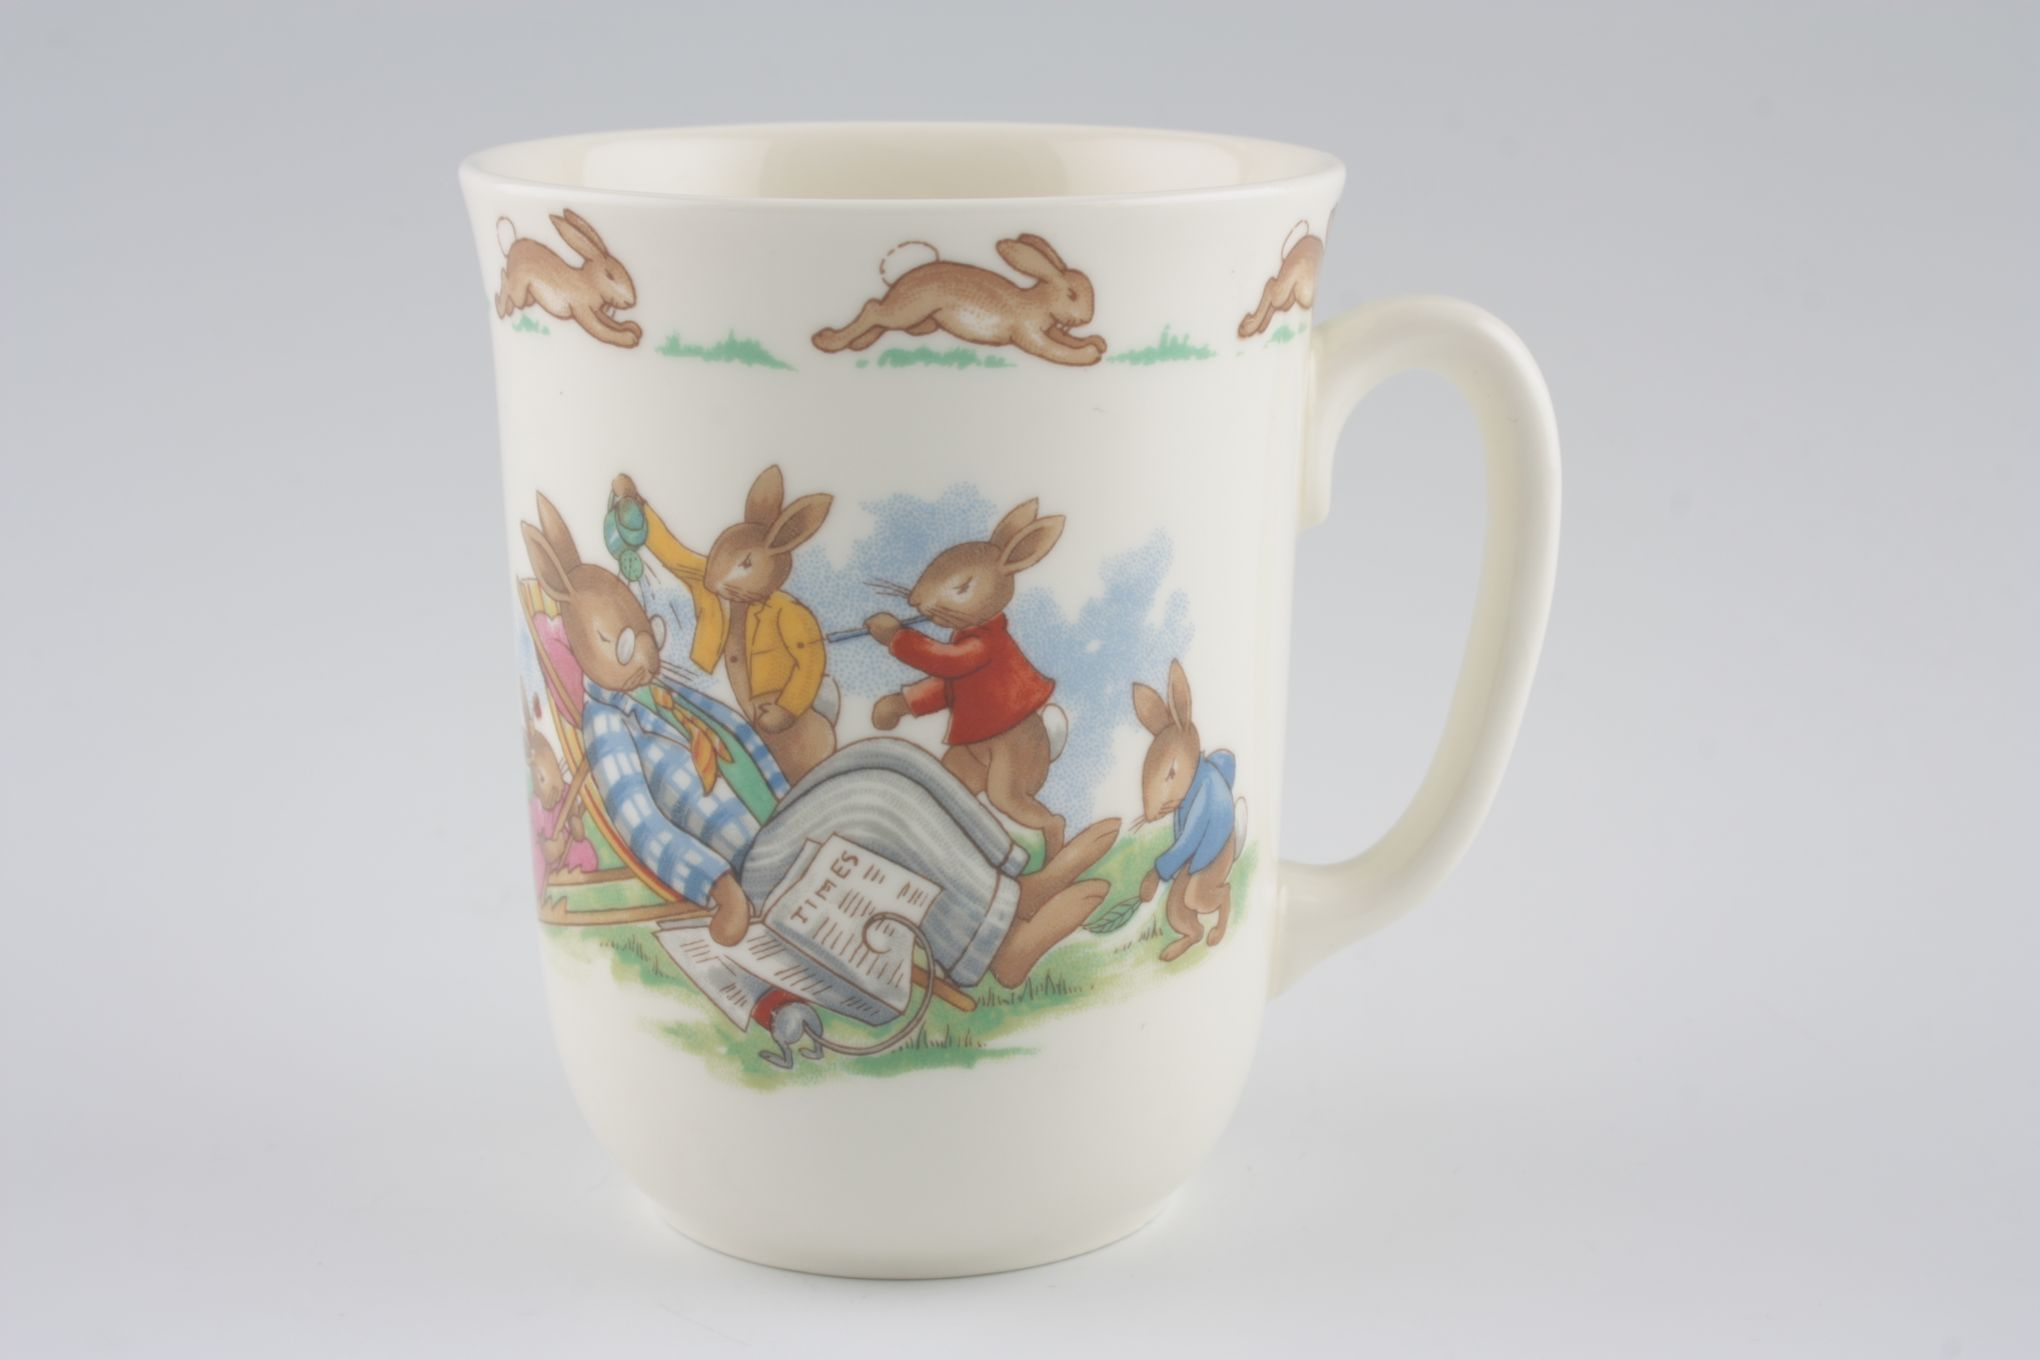 "Royal Doulton Bunnykins - 'Regd. Trade Mark' Mug Deckchair 3 x 3 5/8"" thumb 1"